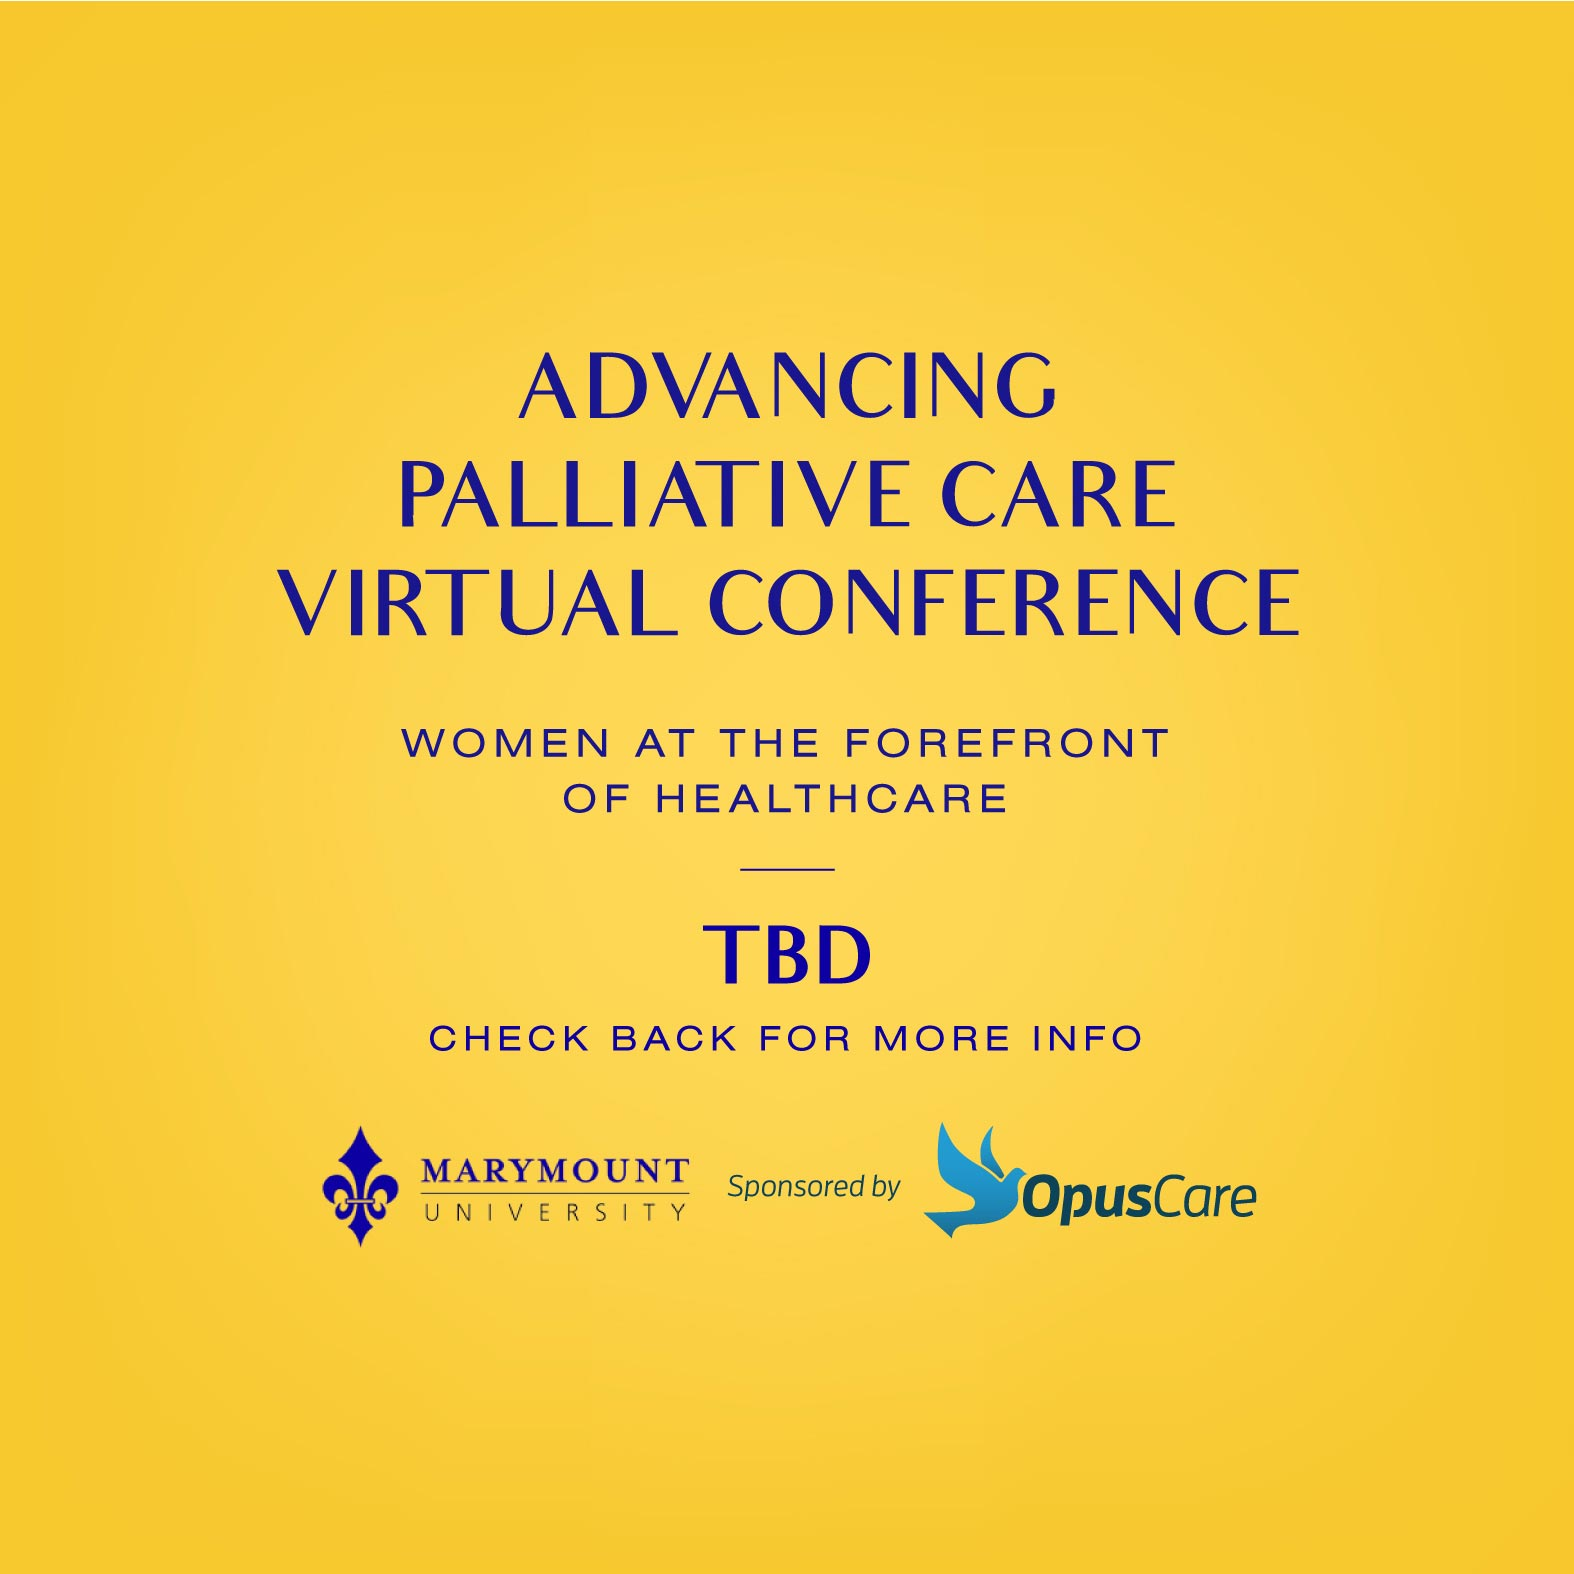 Advancing Palliative Care Virtual Conference mobile banner